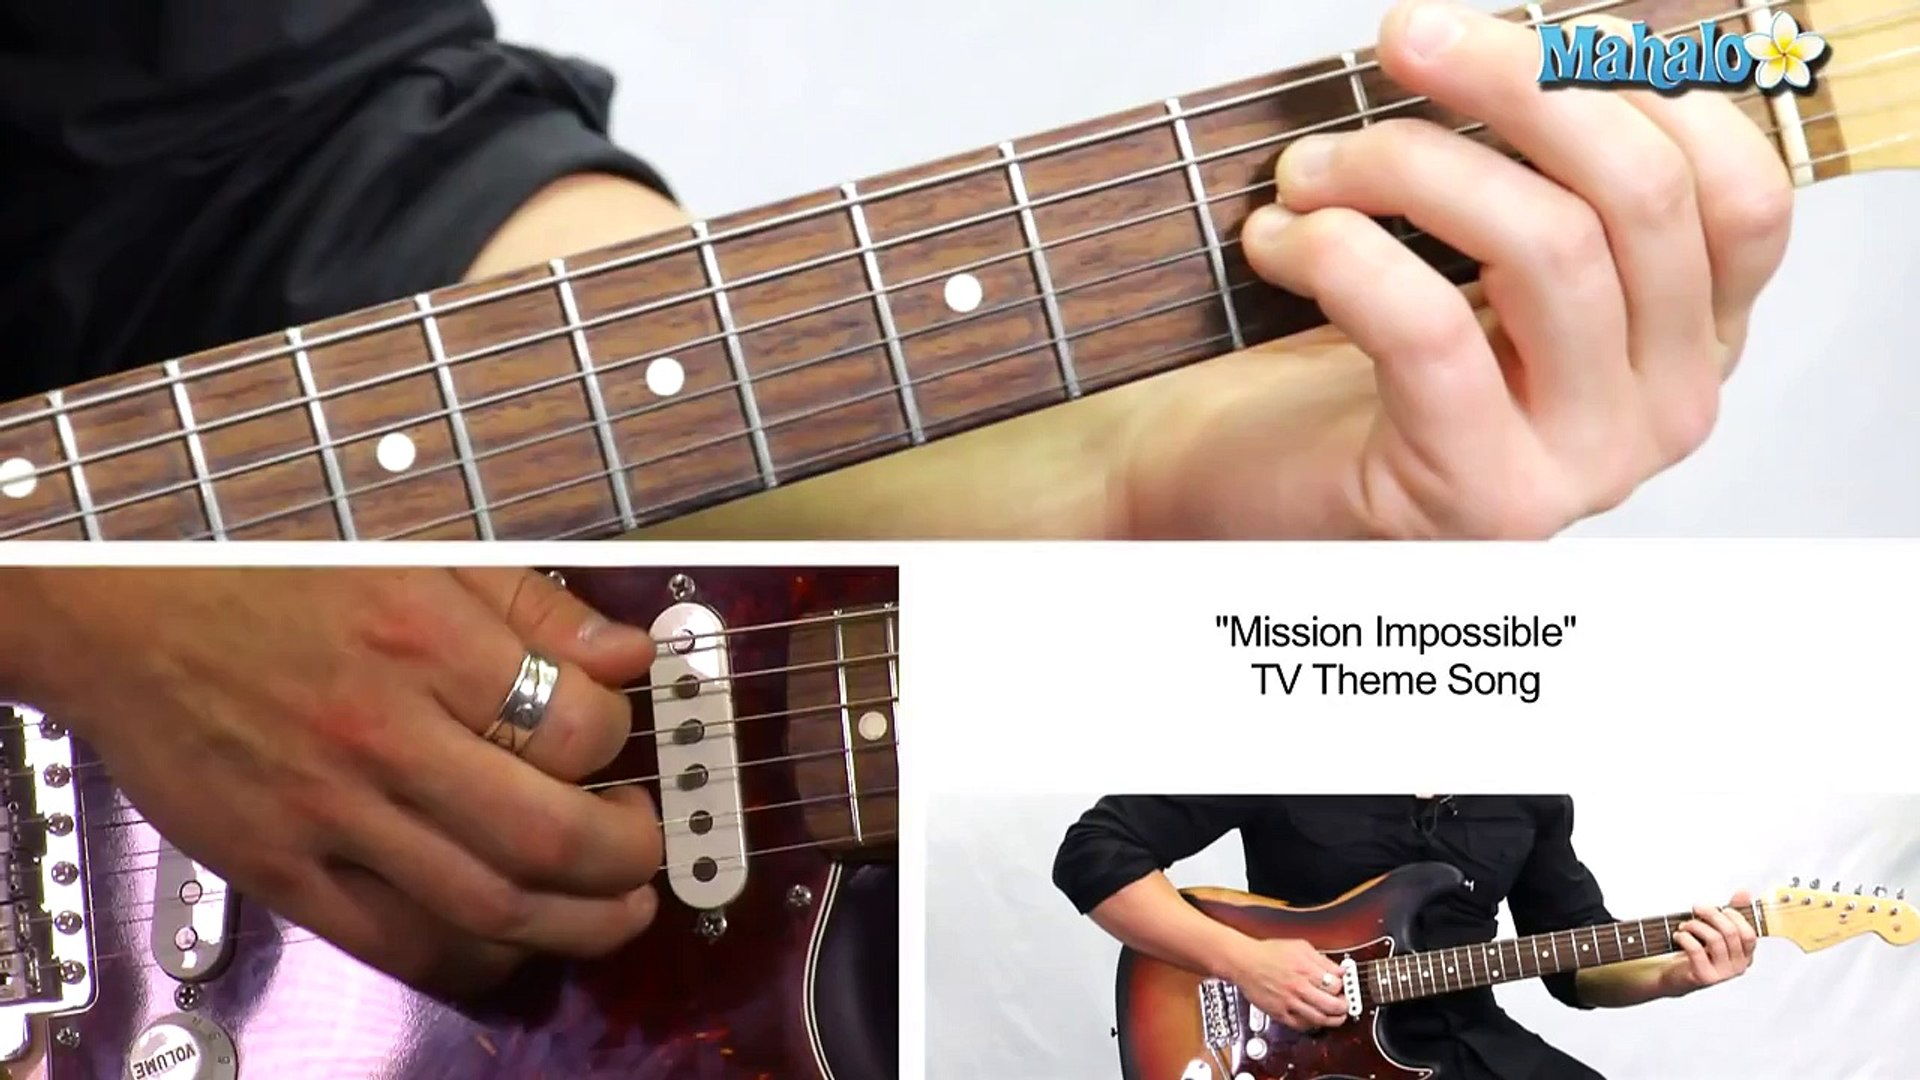 How to Play Mission Impossible TV Theme Song on Guitar